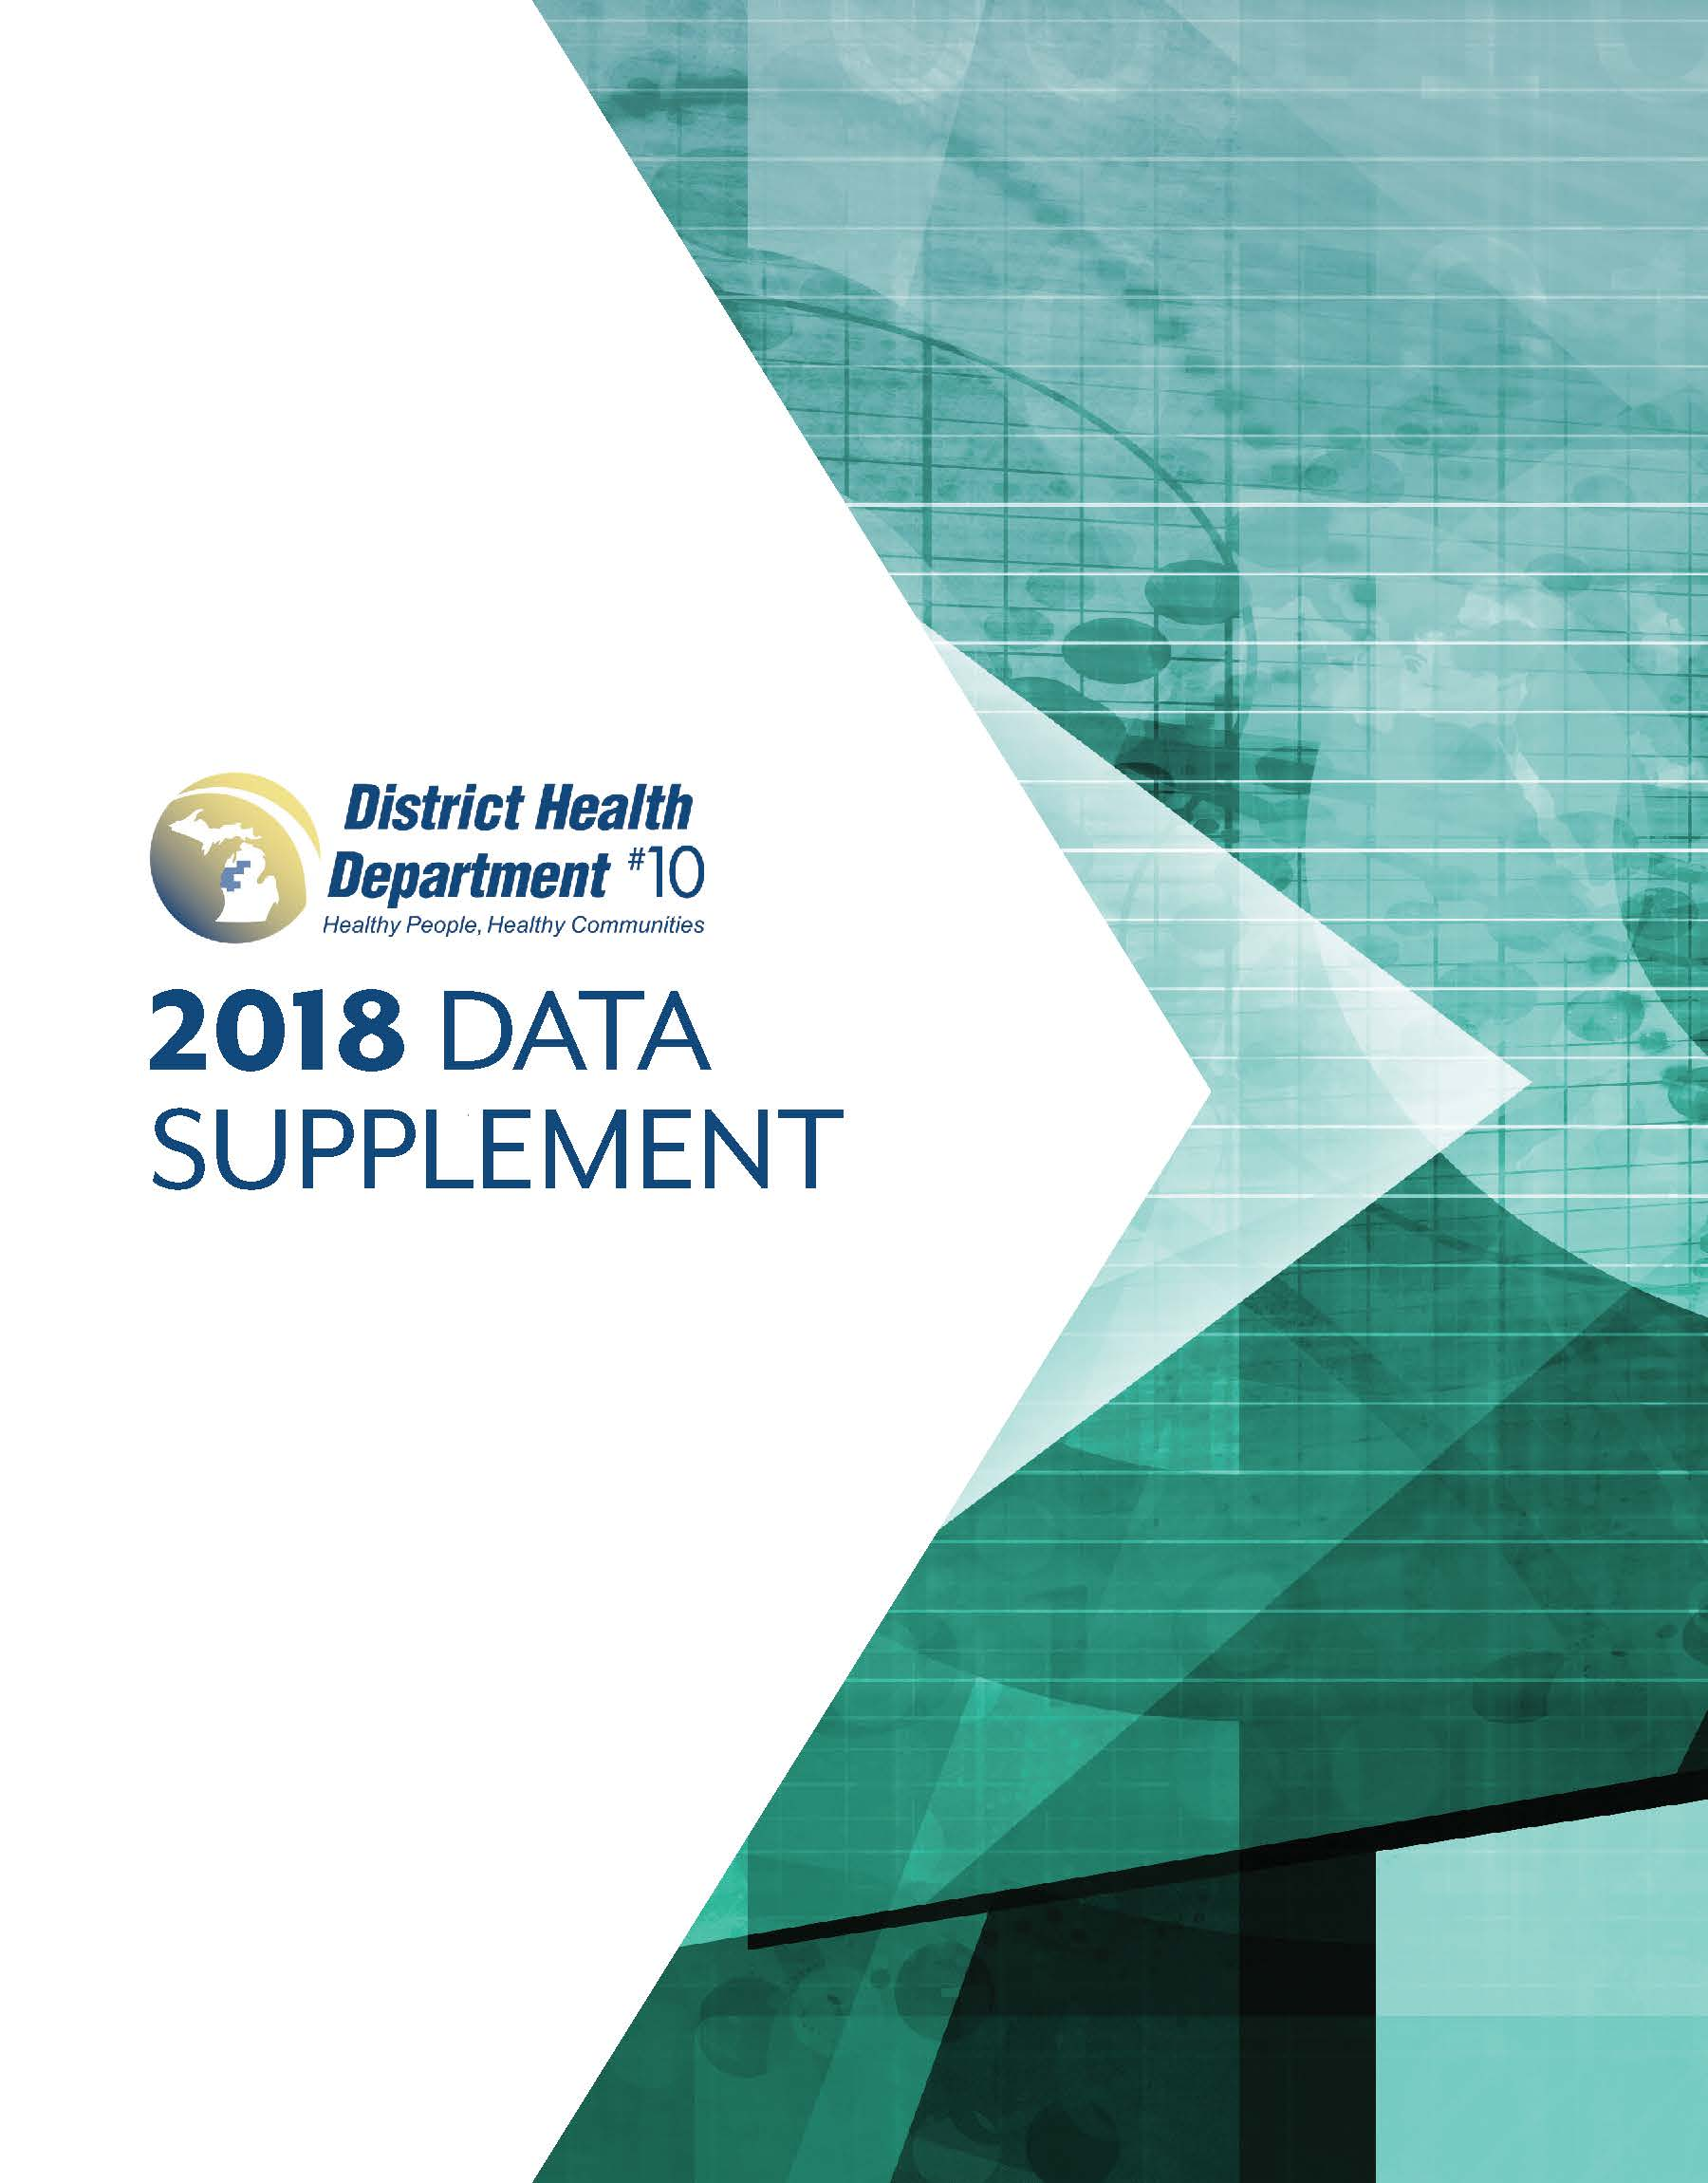 Cover image of DHD#10 2018 Data Supplement